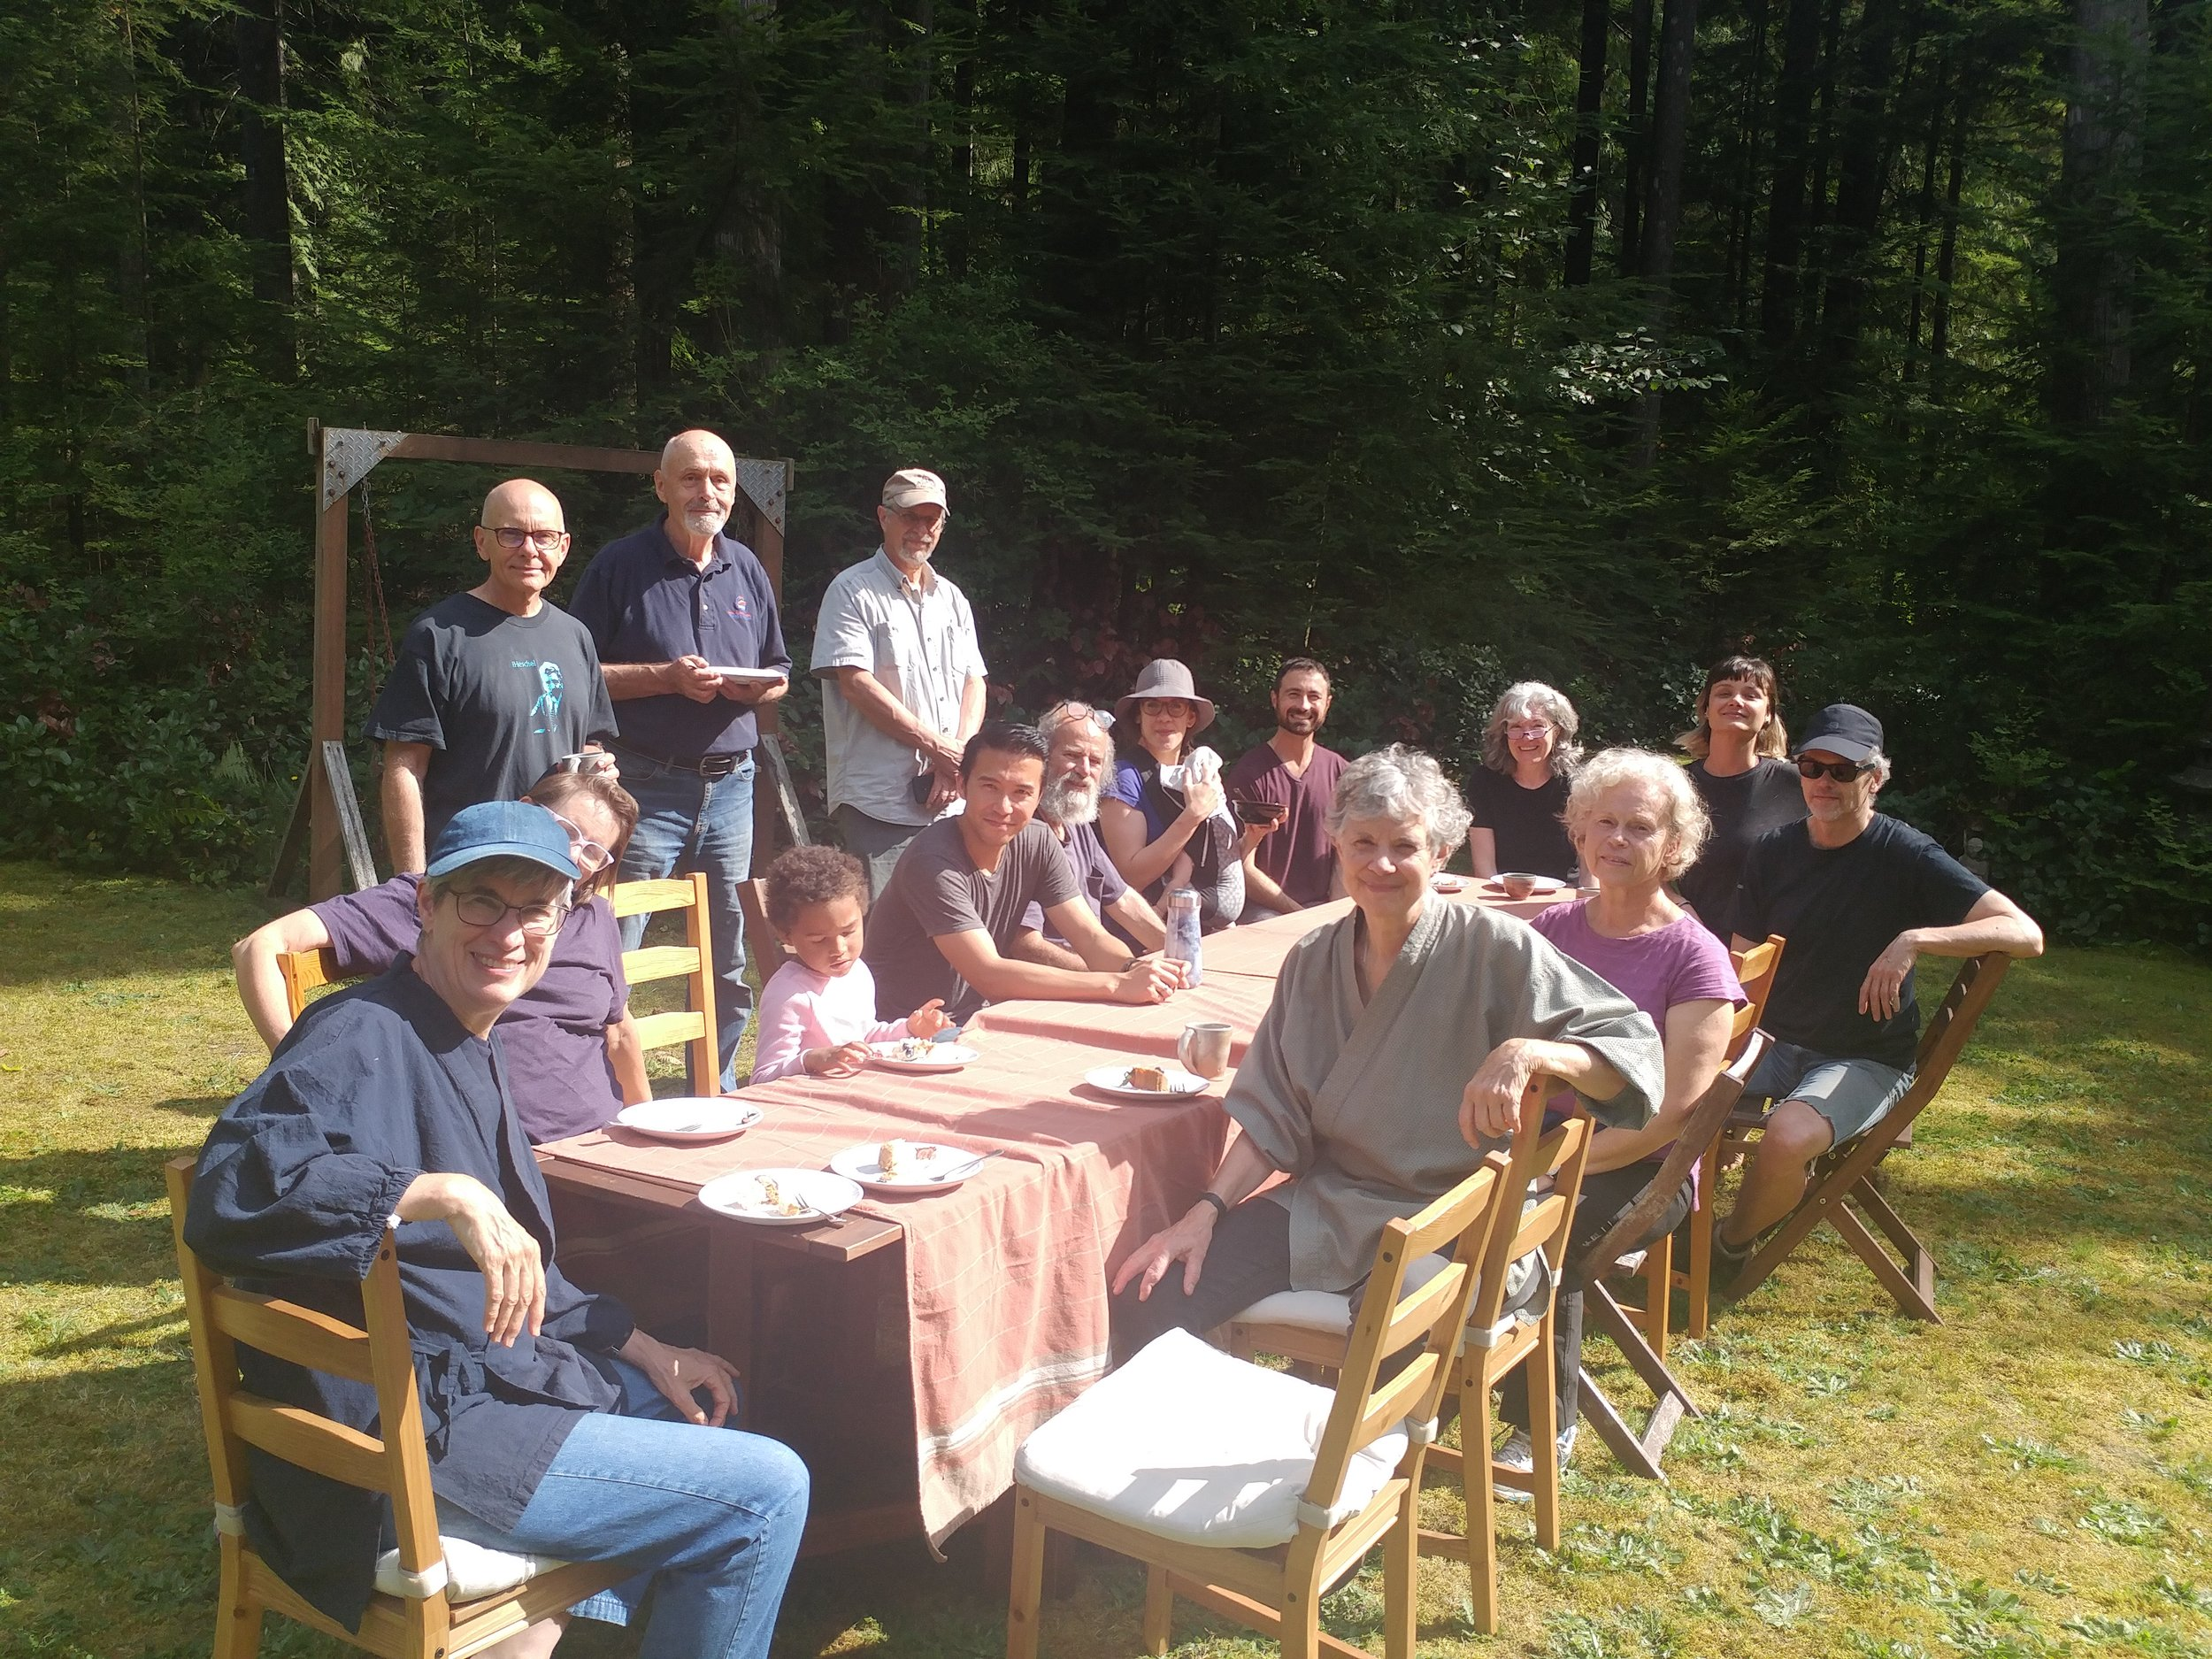 2019 picnic group 2.jpg